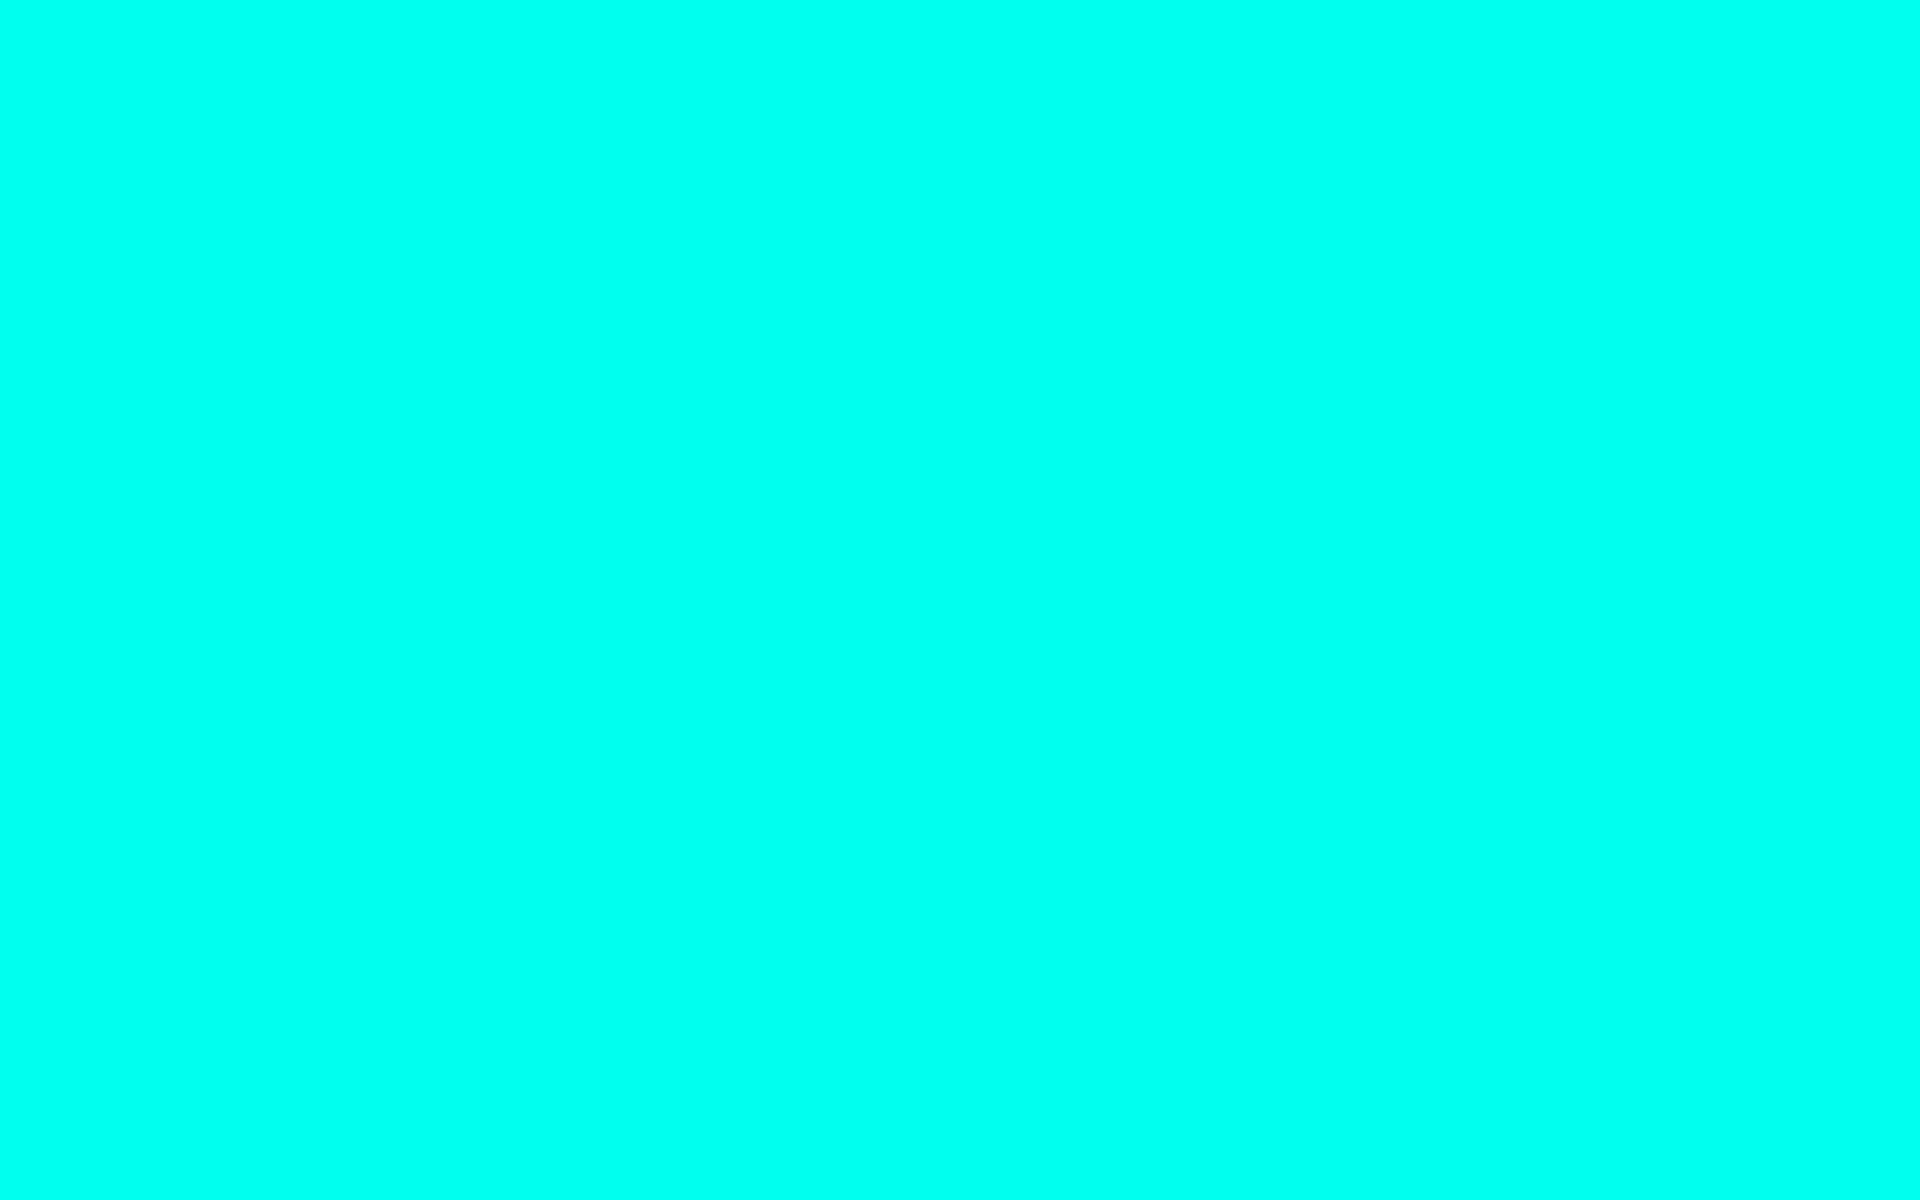 1920x1200 Turquoise Blue Solid Color Background